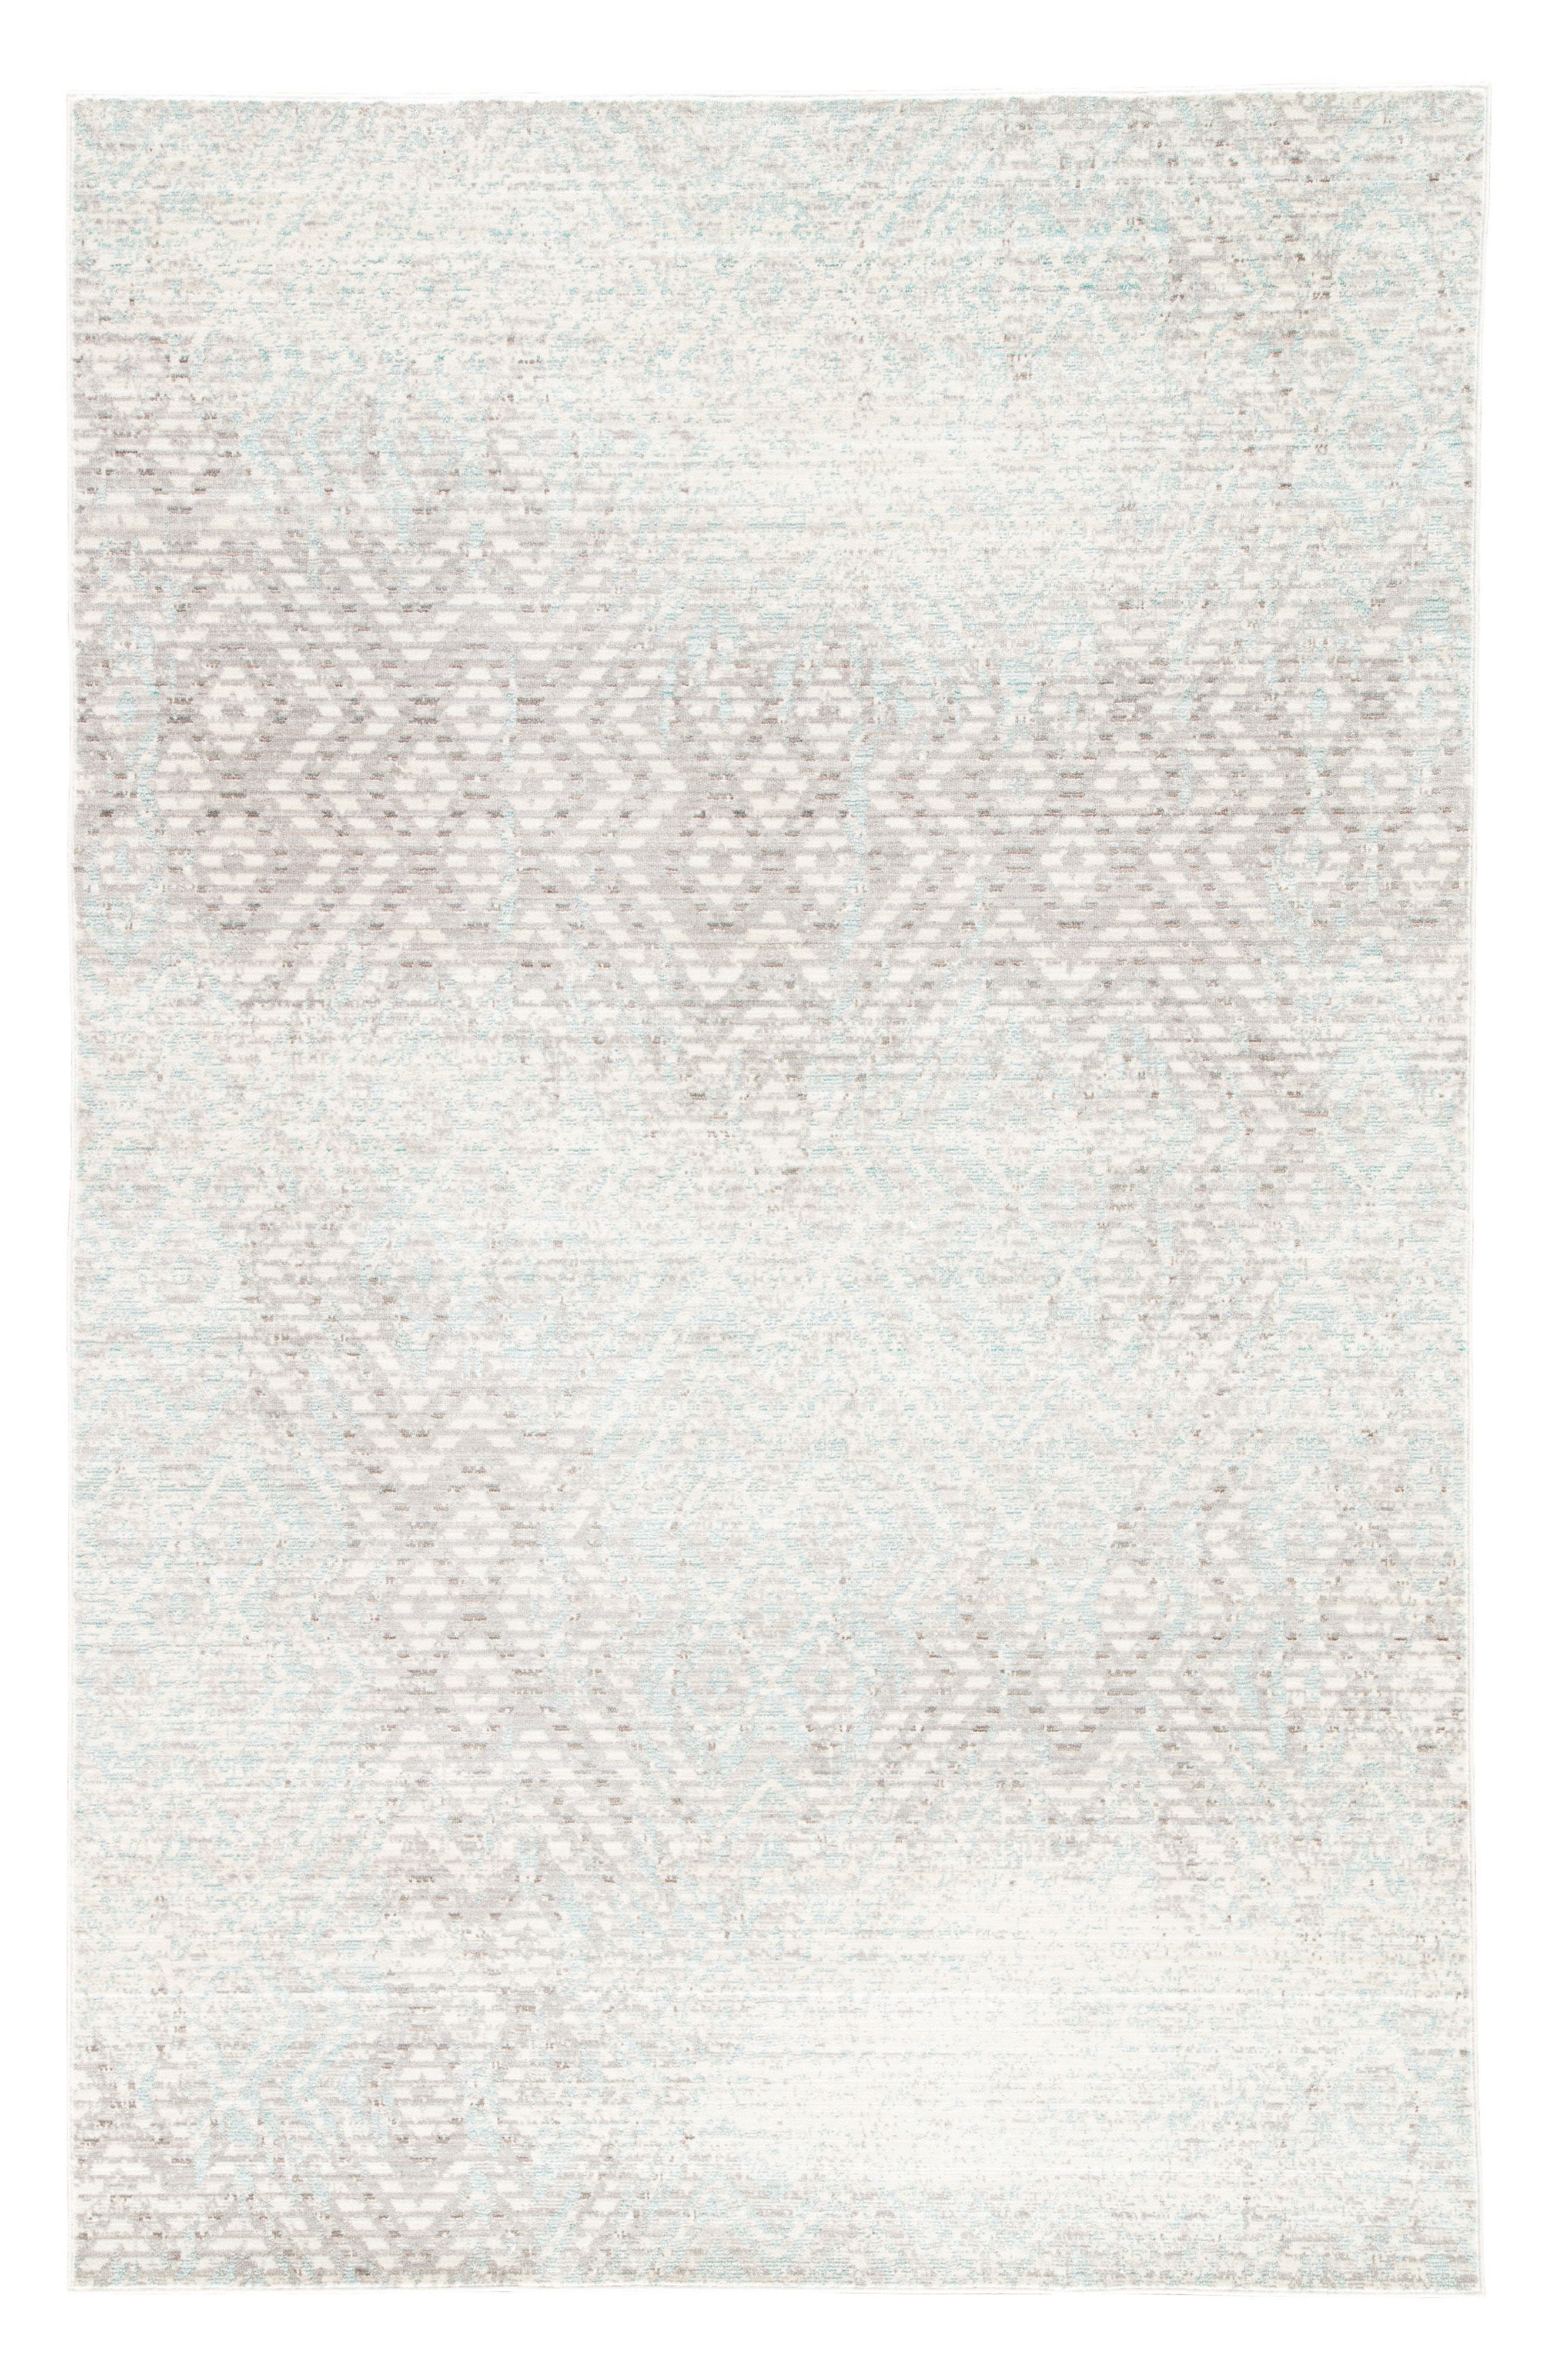 Diamond Interlock Rug,                             Main thumbnail 1, color,                             021